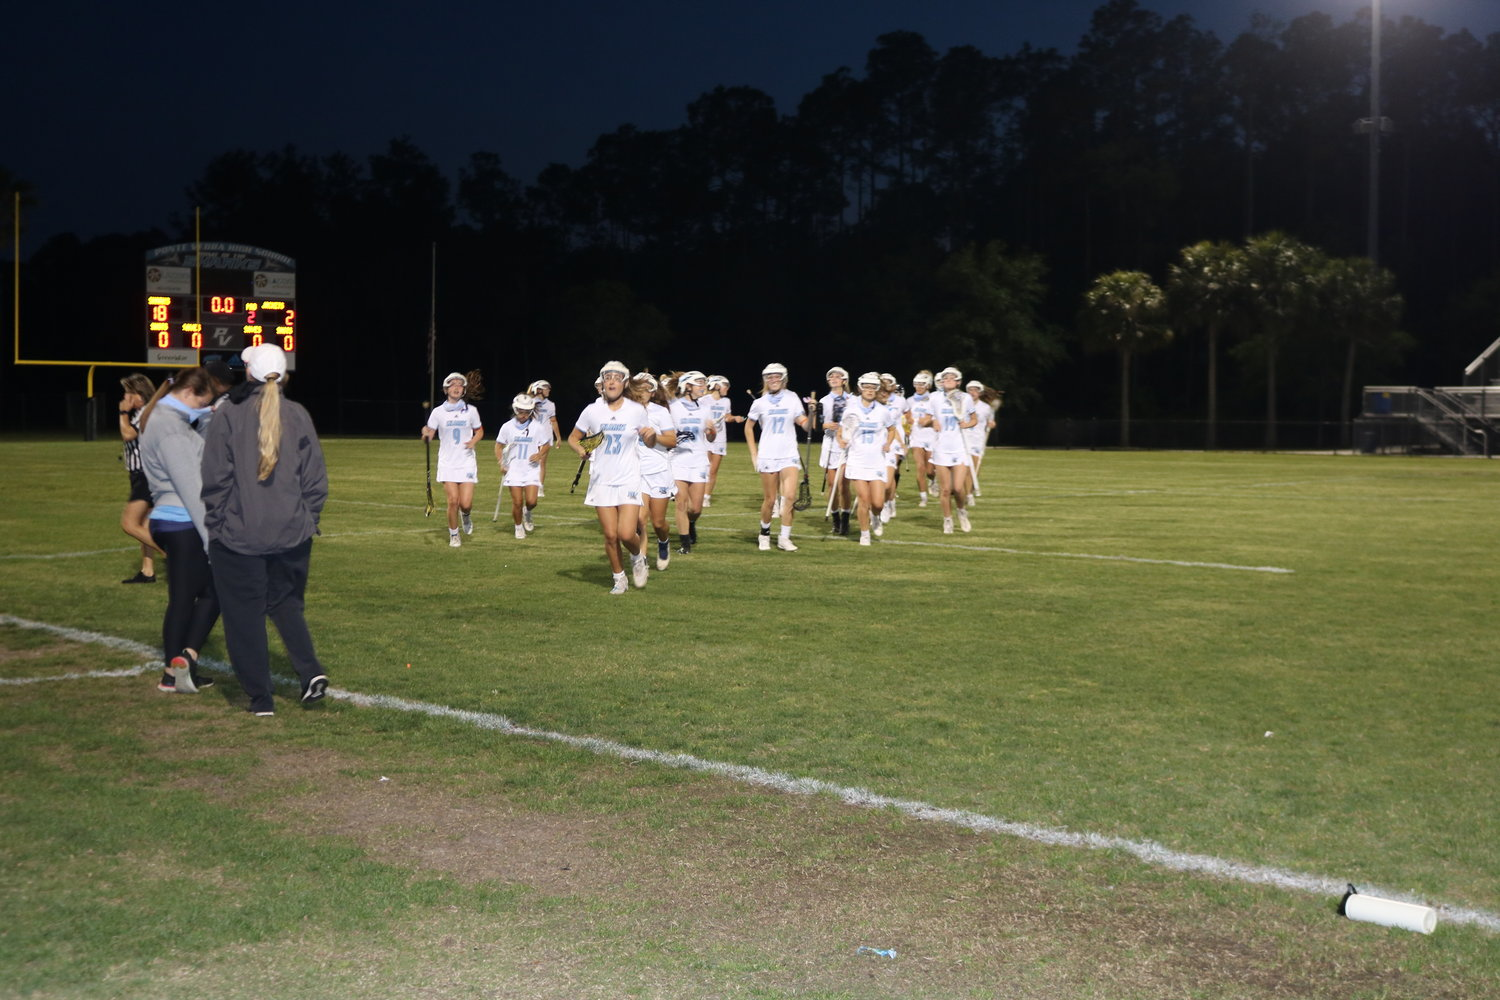 The Ponte Vedra High School girls lacrosse team runs off the field after defeating St. Augustine 18-2 in the regional semifinals last Thursday. The Lady Sharks will play Gulf Breeze in the regional final Thursday, April 29.